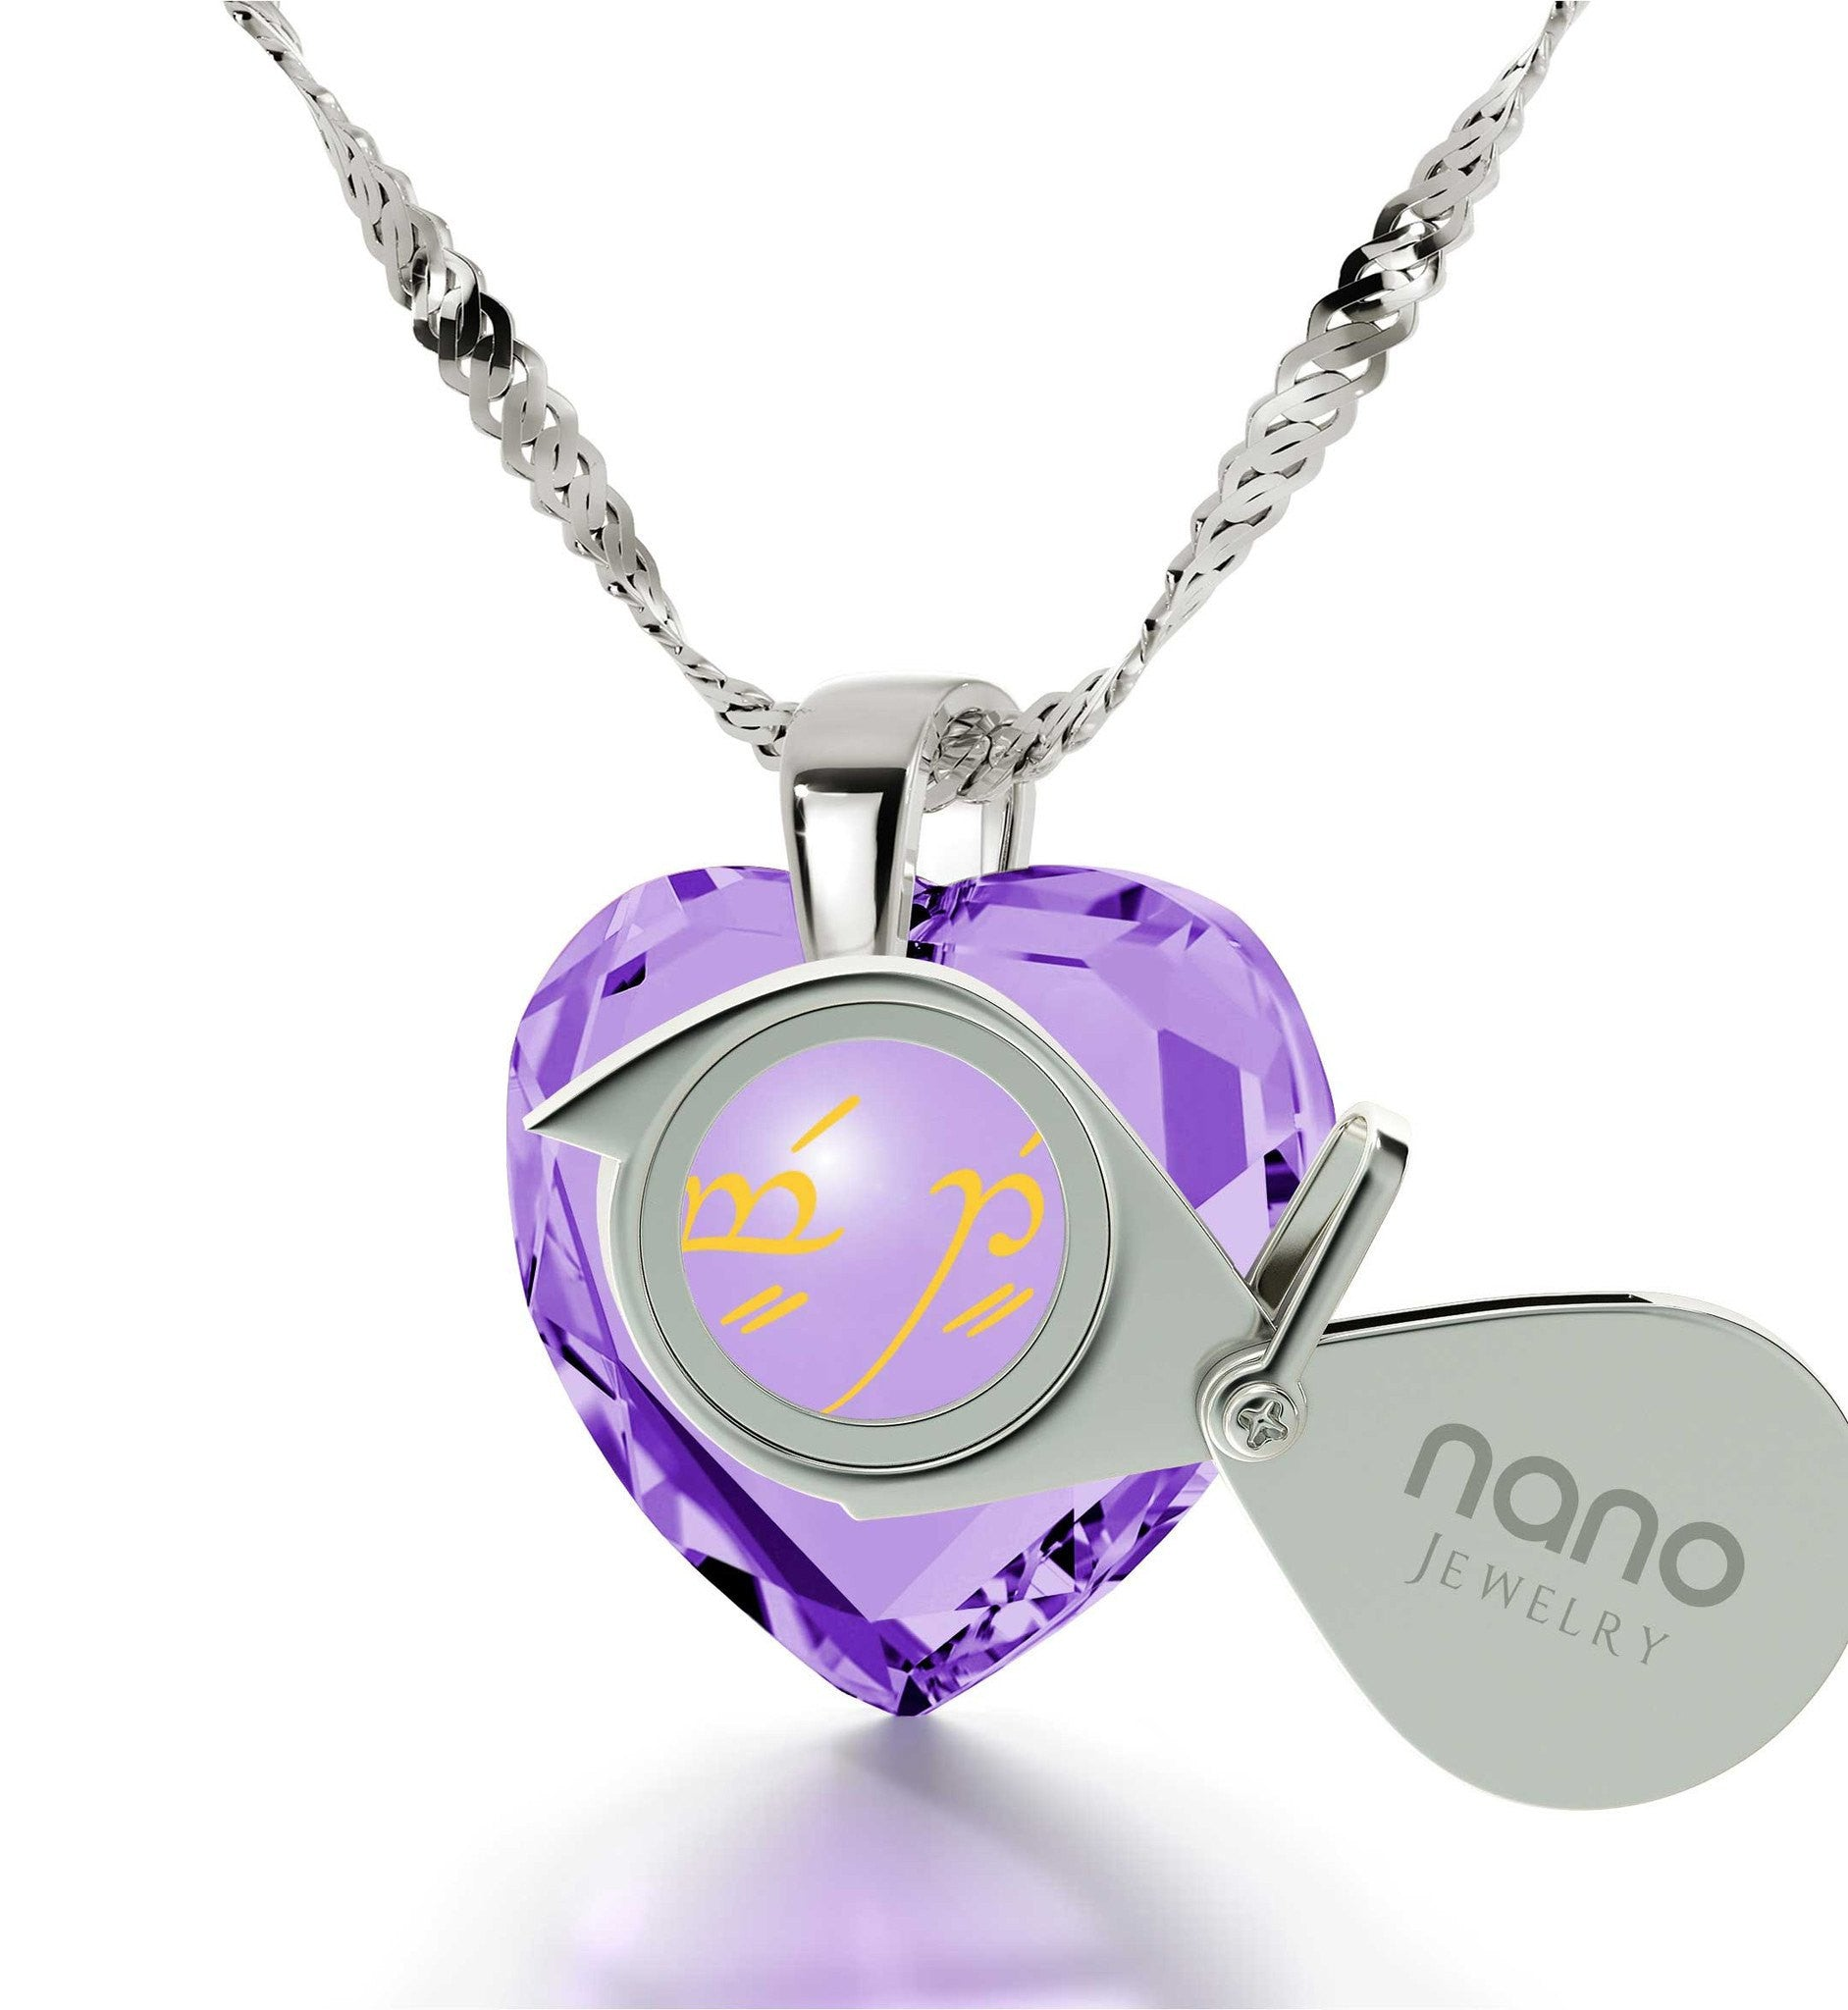 "What to Get Girlfriend for Birthday, ""I Love You"" in Elvish, 30th Birthday Present Ideas, Nano Jewelry"